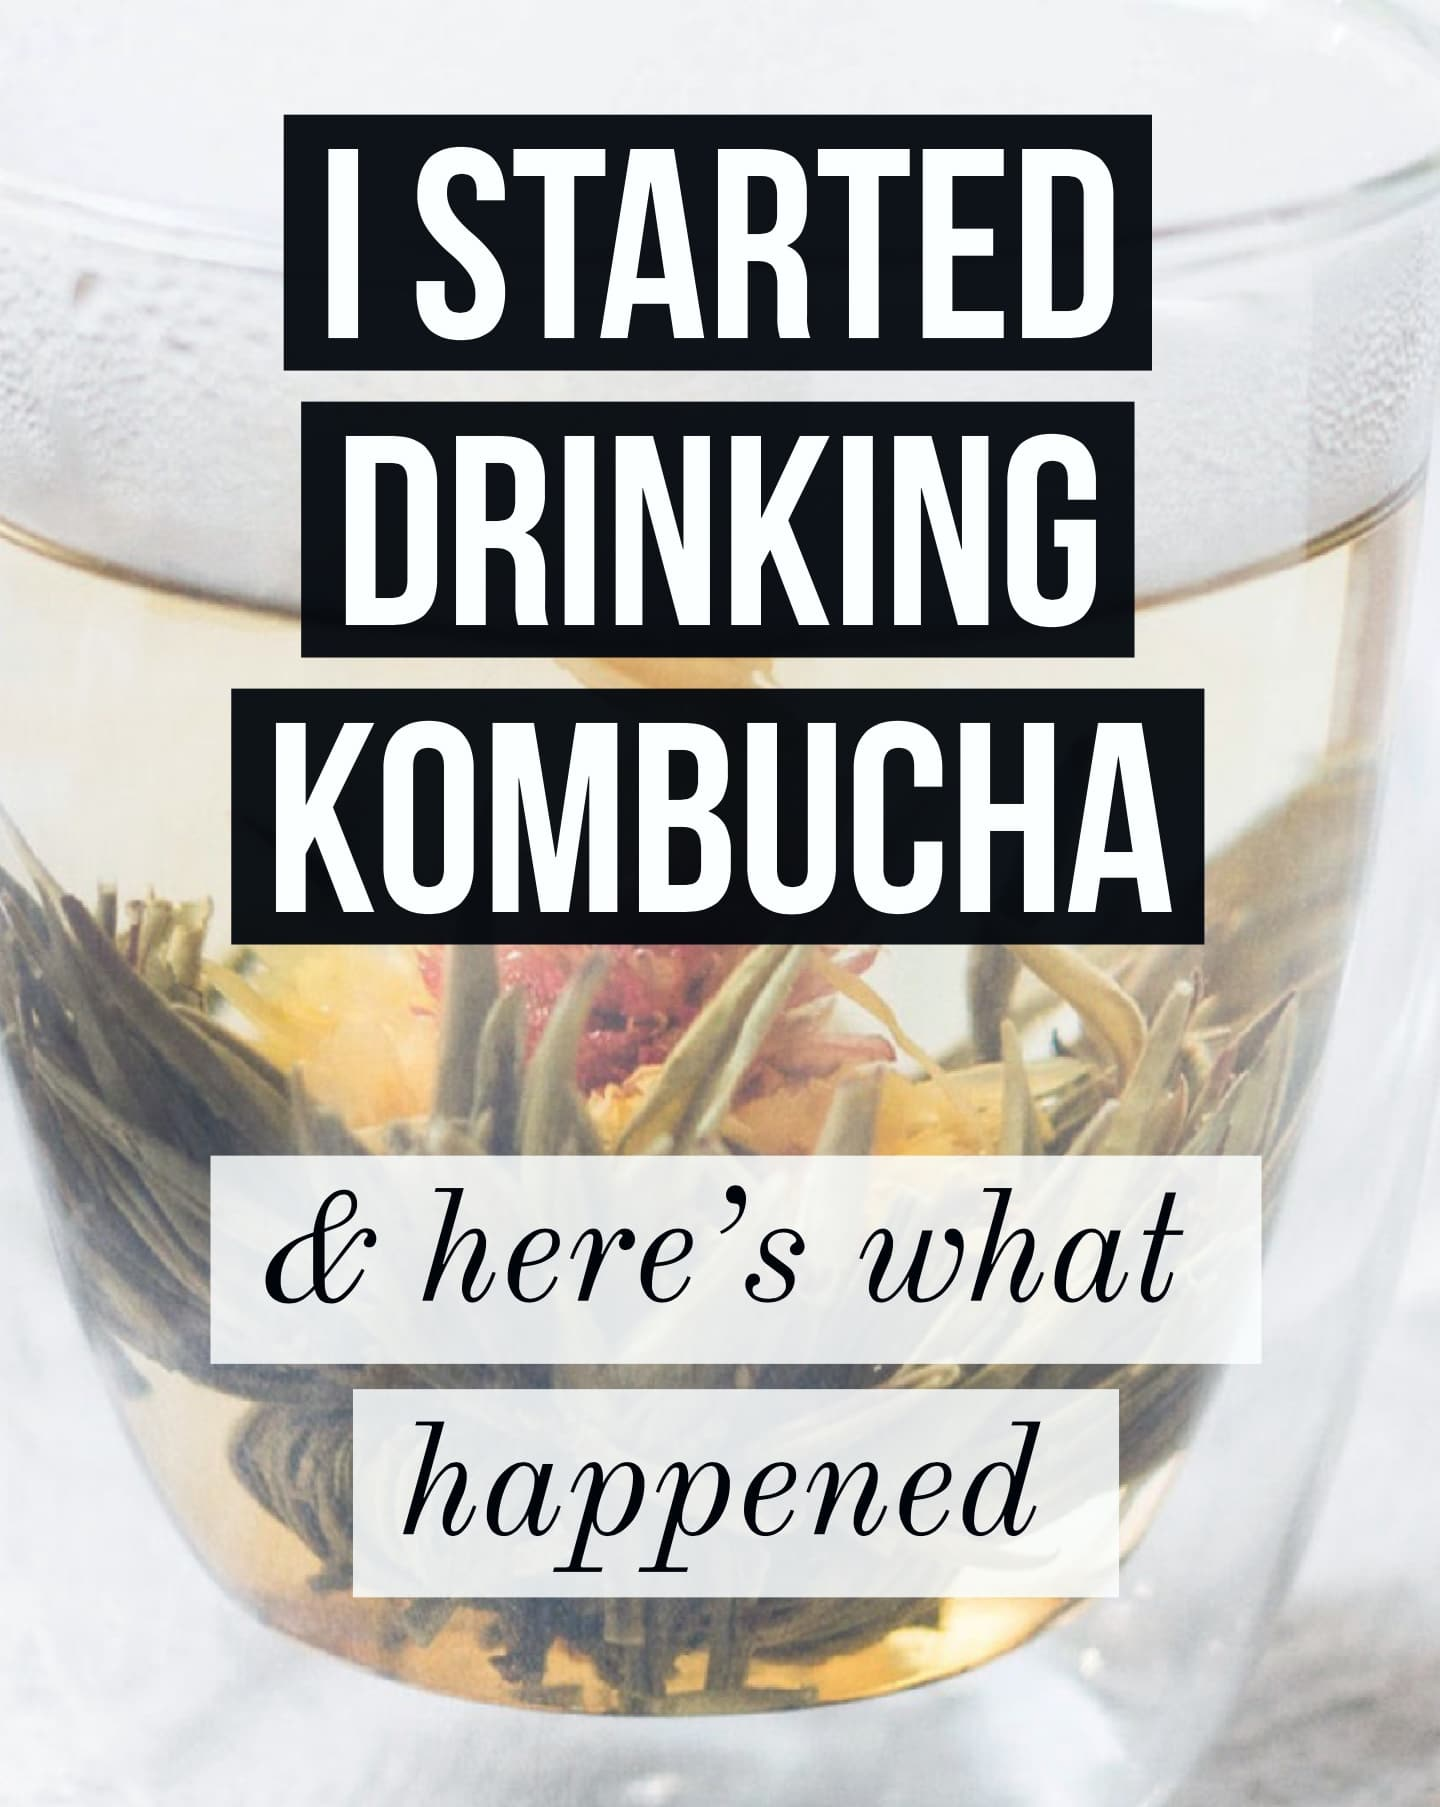 here's what happened when I drank kombucha